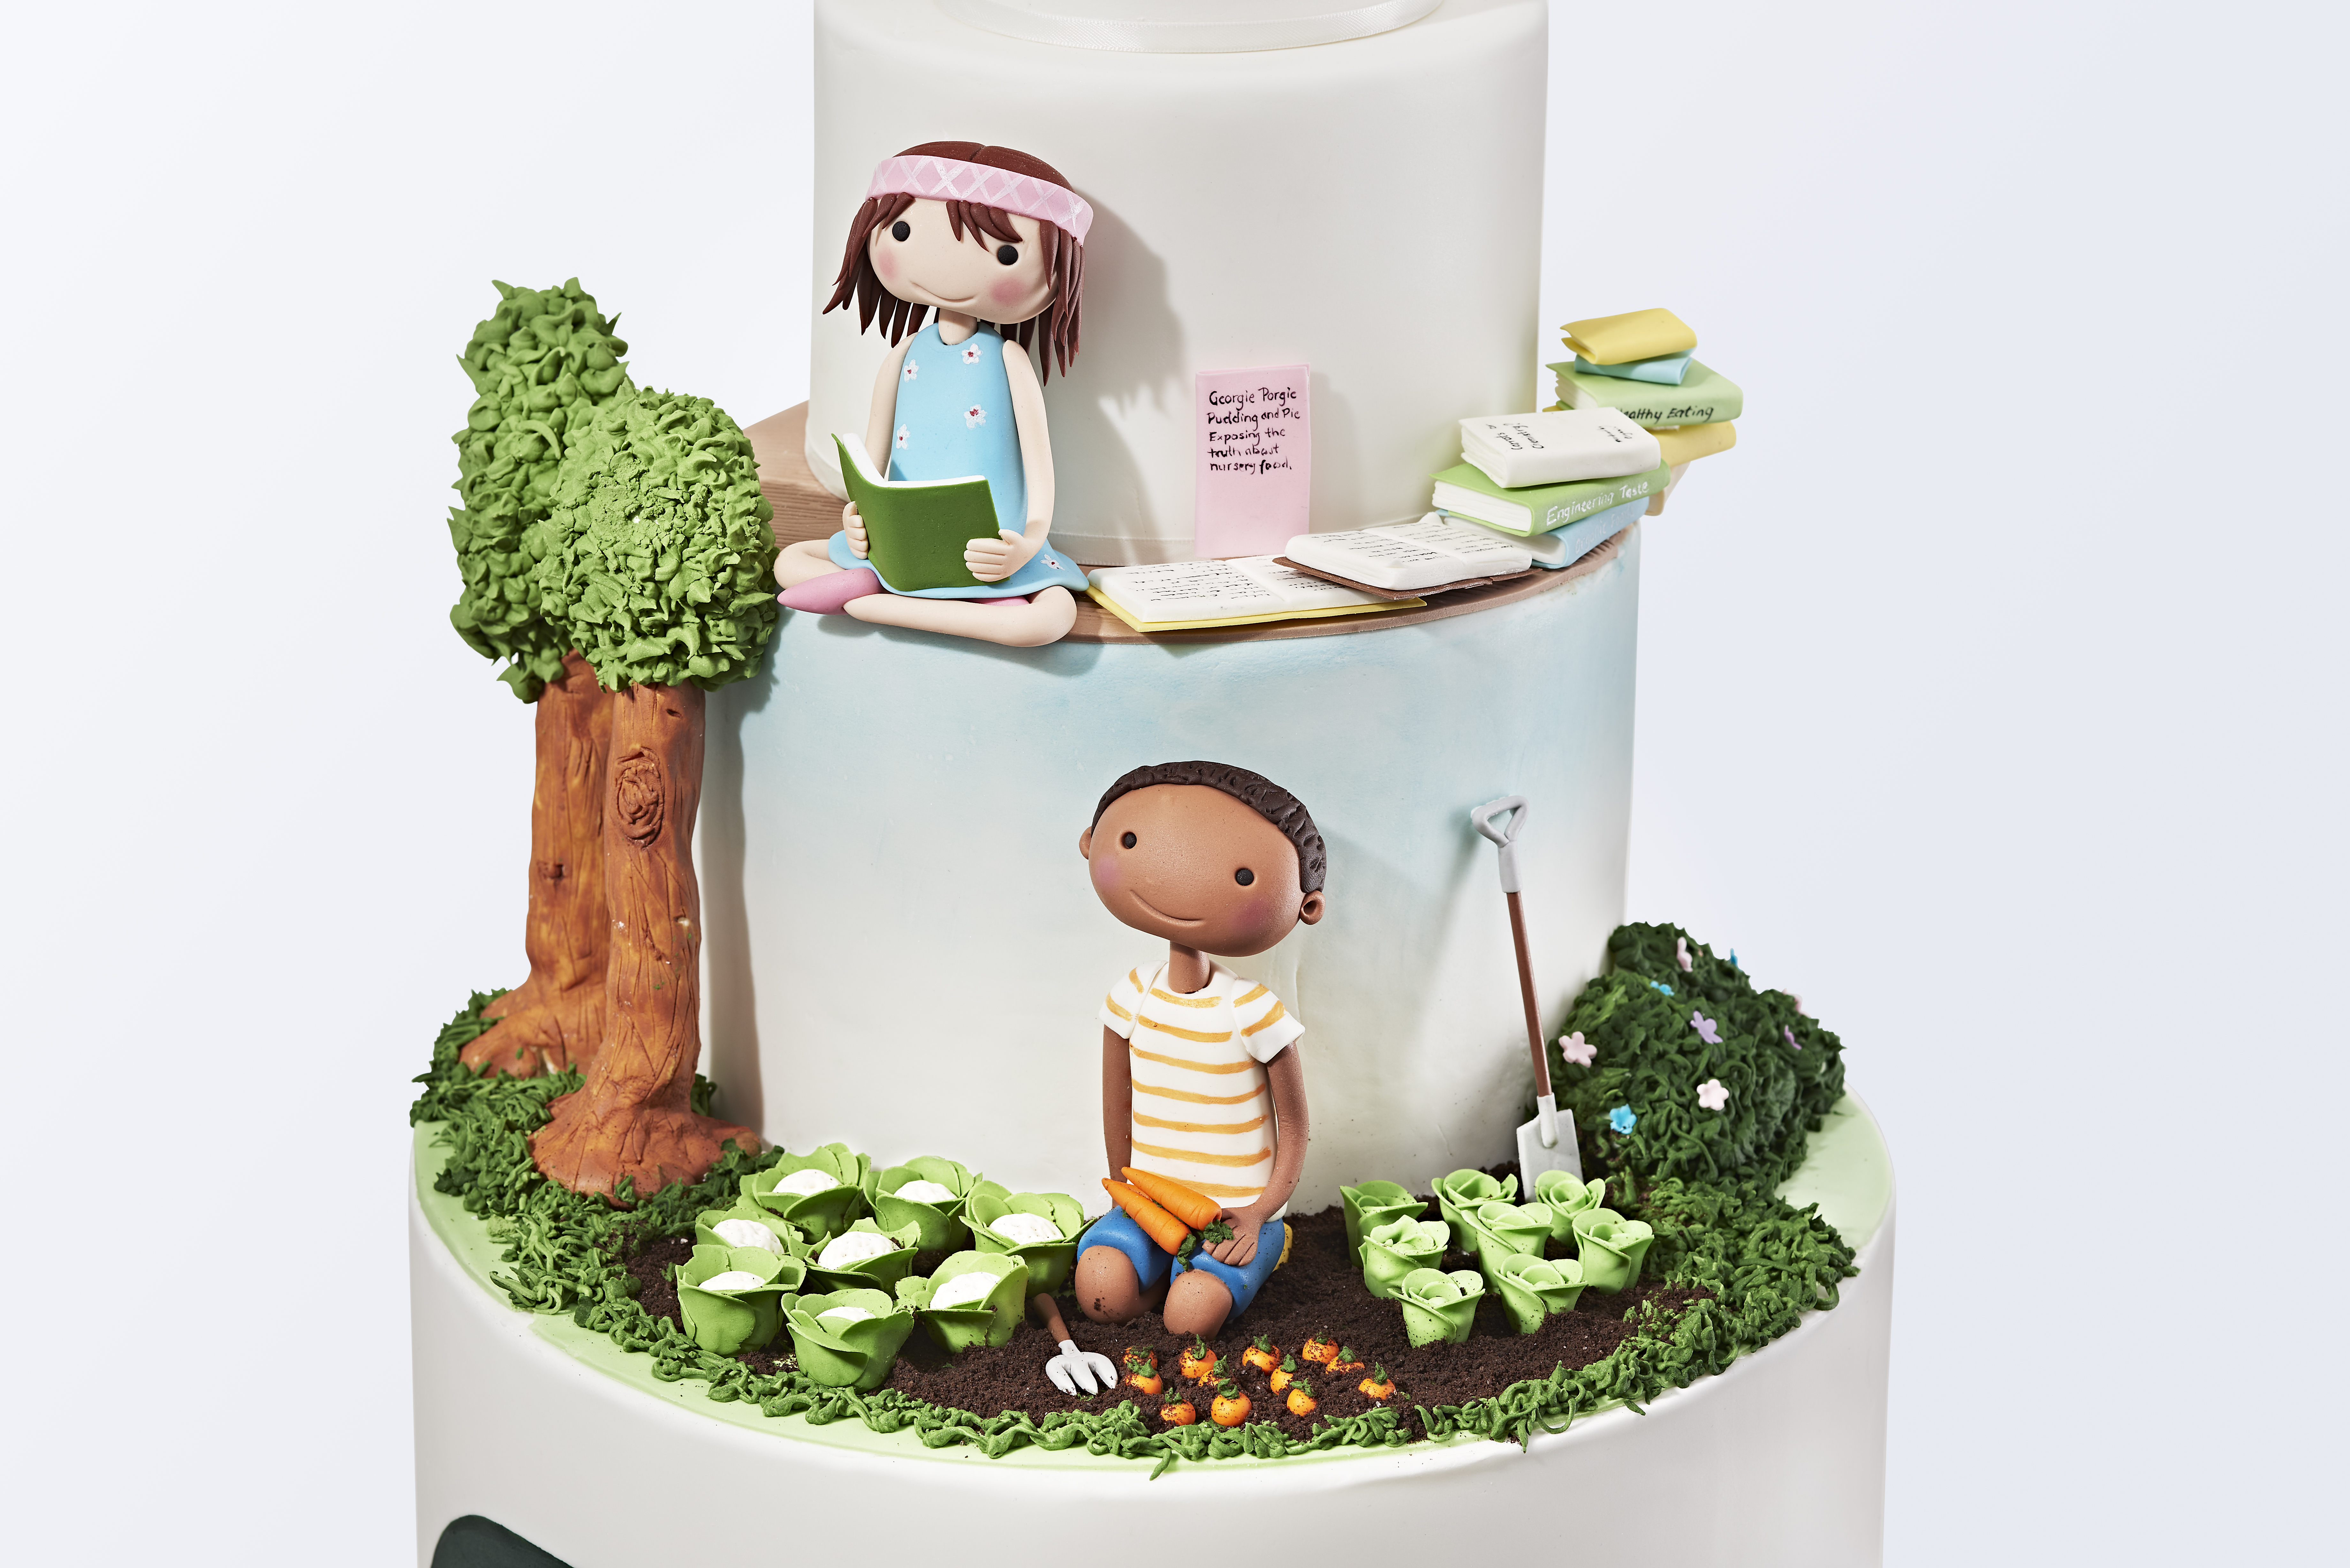 This year, we celebrate the 25th anniversary of Organix. The healthy children's food brand launched a really insightful sustainability report recently.